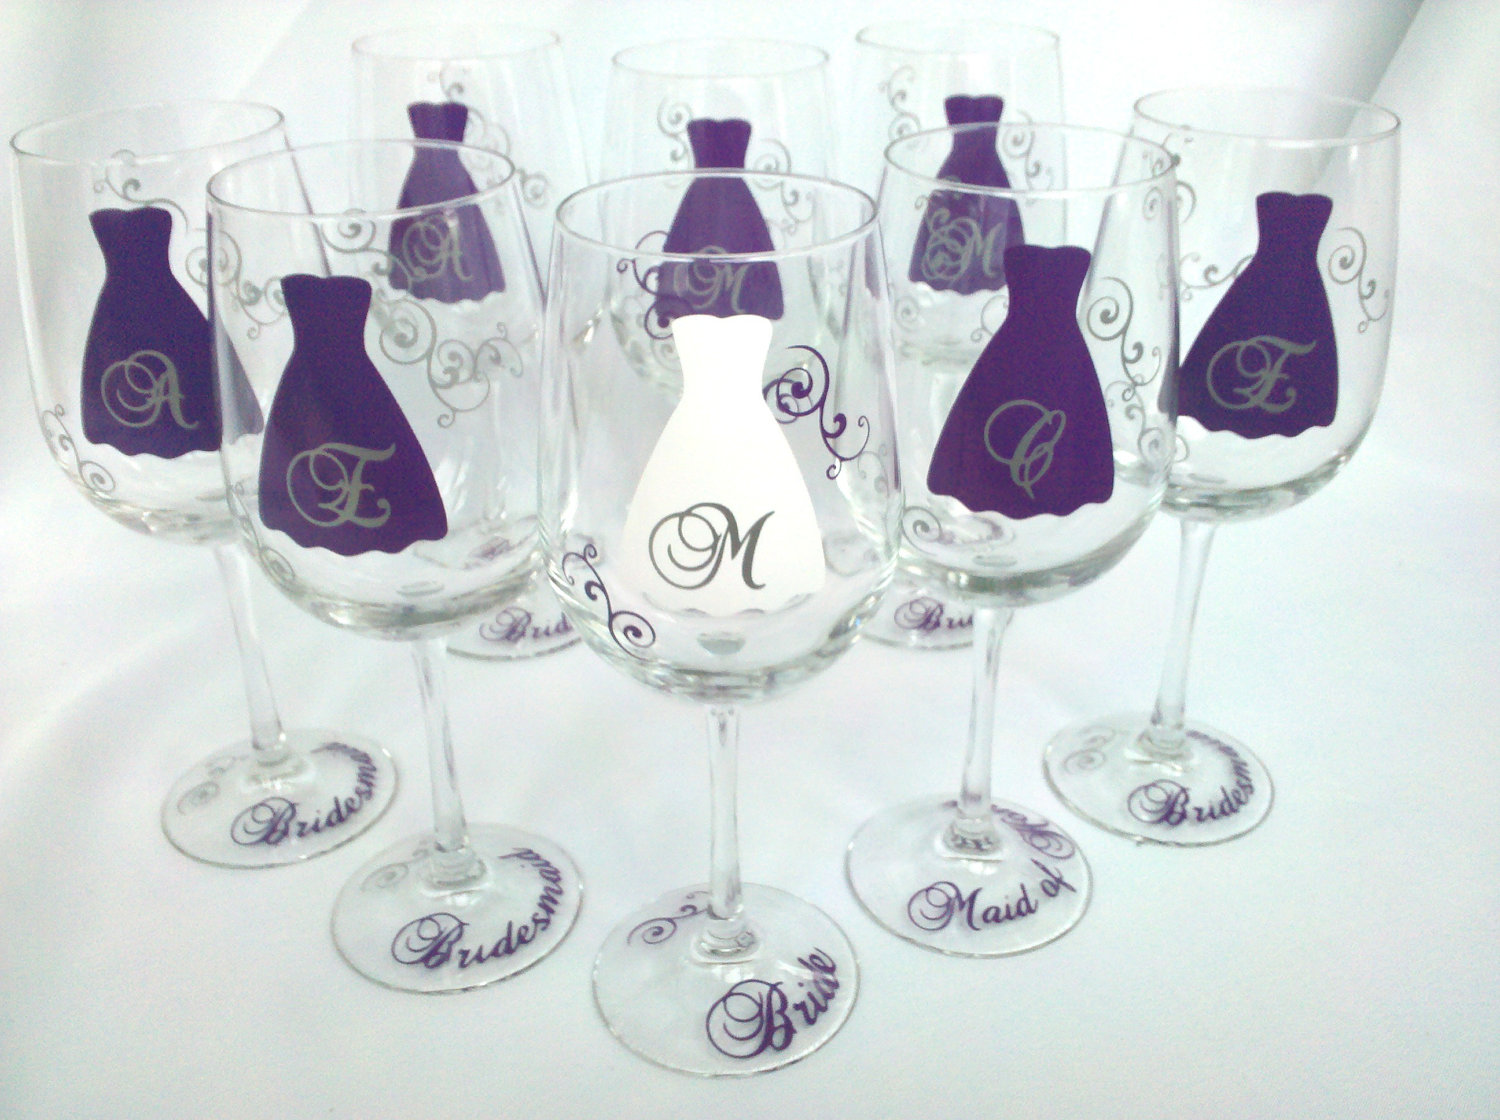 Bridesmaid Wine Gles Set Of 6 Personalized Wedding Party Gift With Monogram Ideas 72 00 Via Etsy